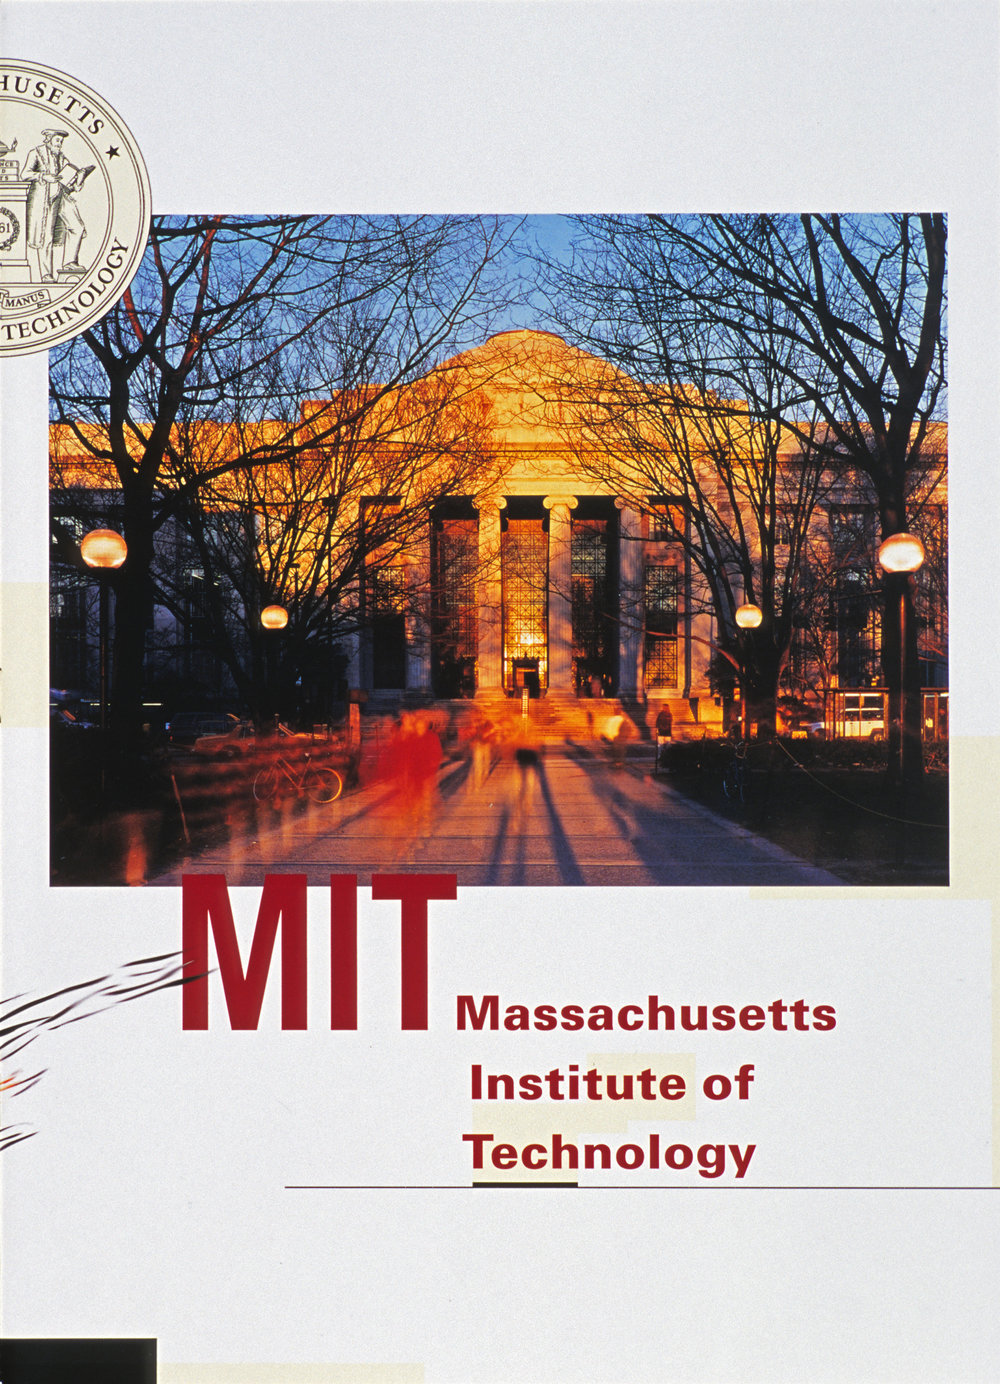 MIT Viewbook front cover (1 of 2)